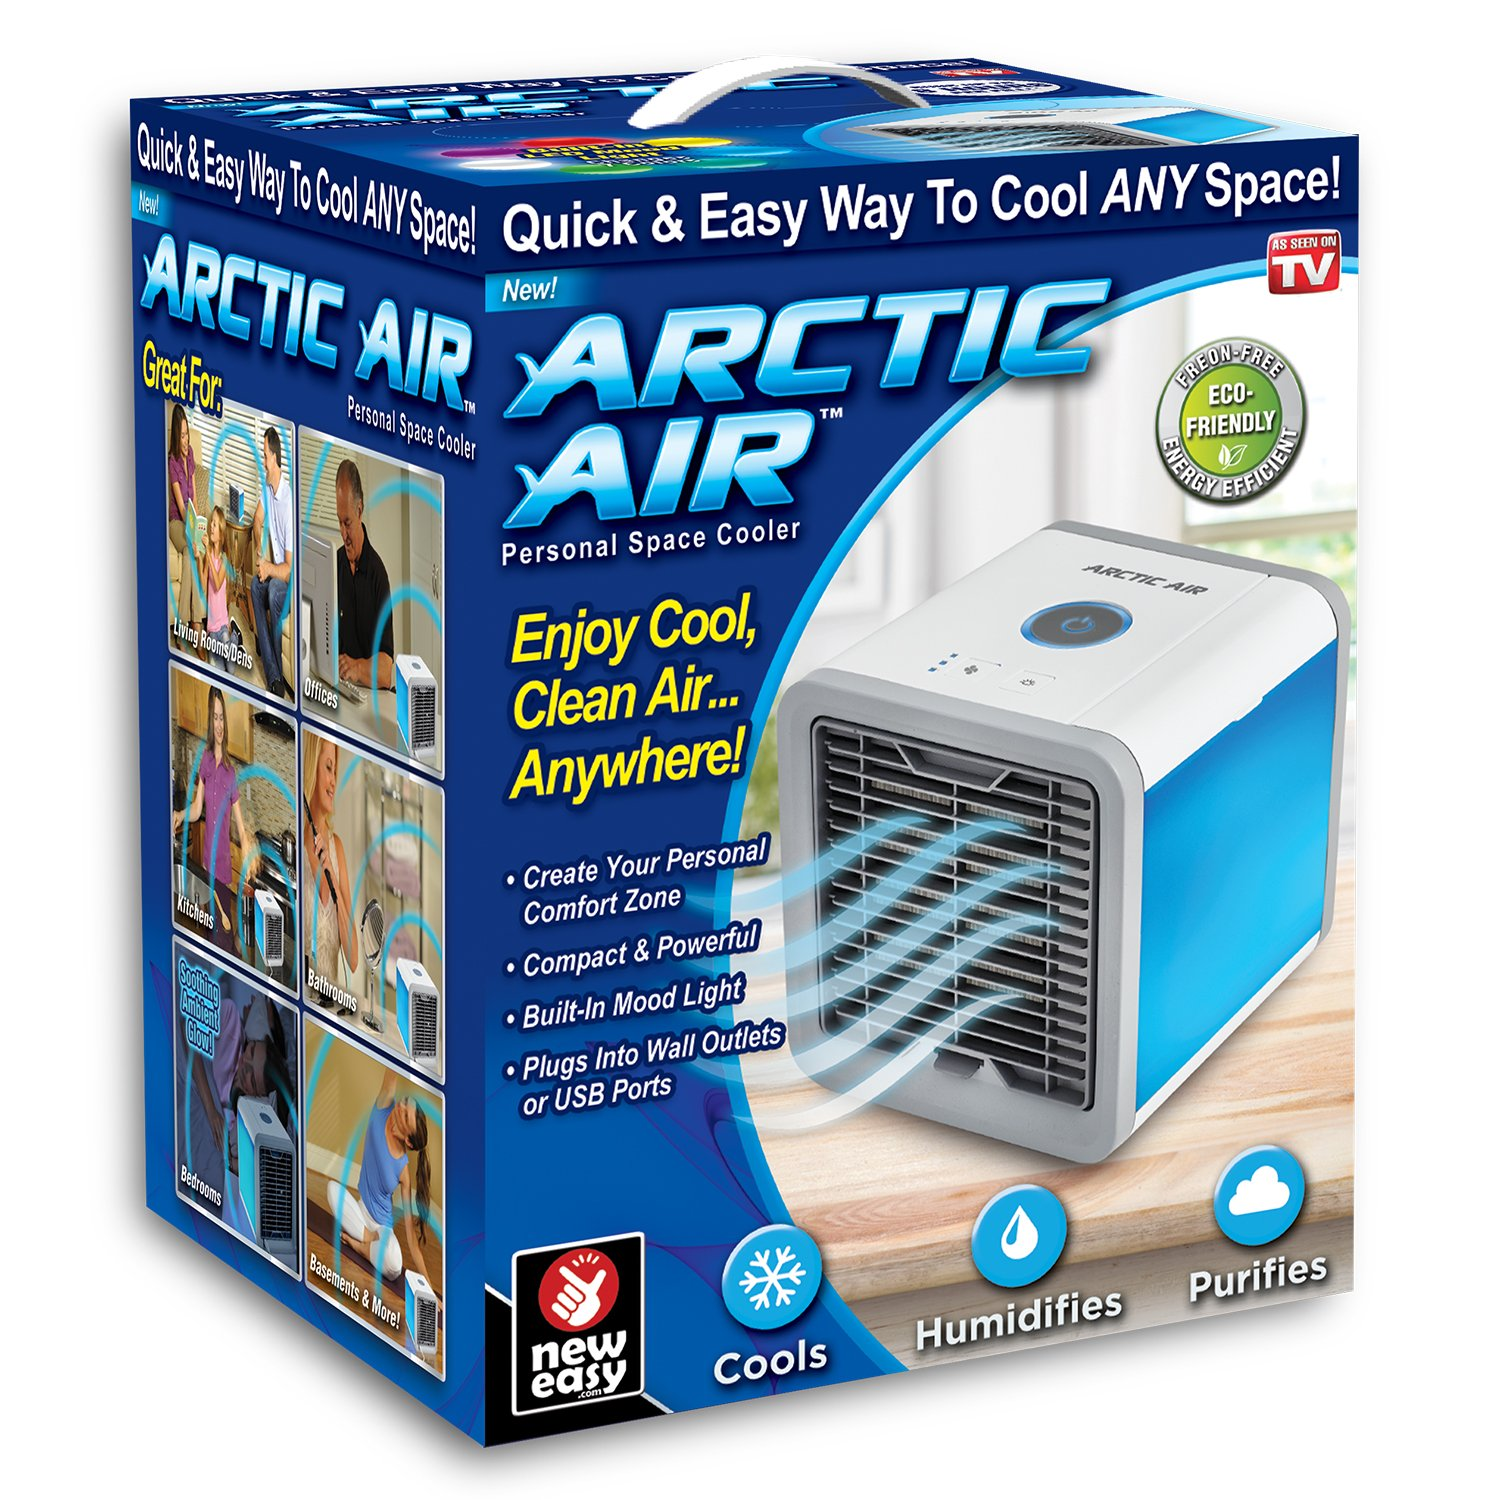 ONTEL AA-MC4 Arctic Air Personal Space & Portable Cooler | The Quick & Easy Way to Cool Any Space, As Seen On TV by Ontel